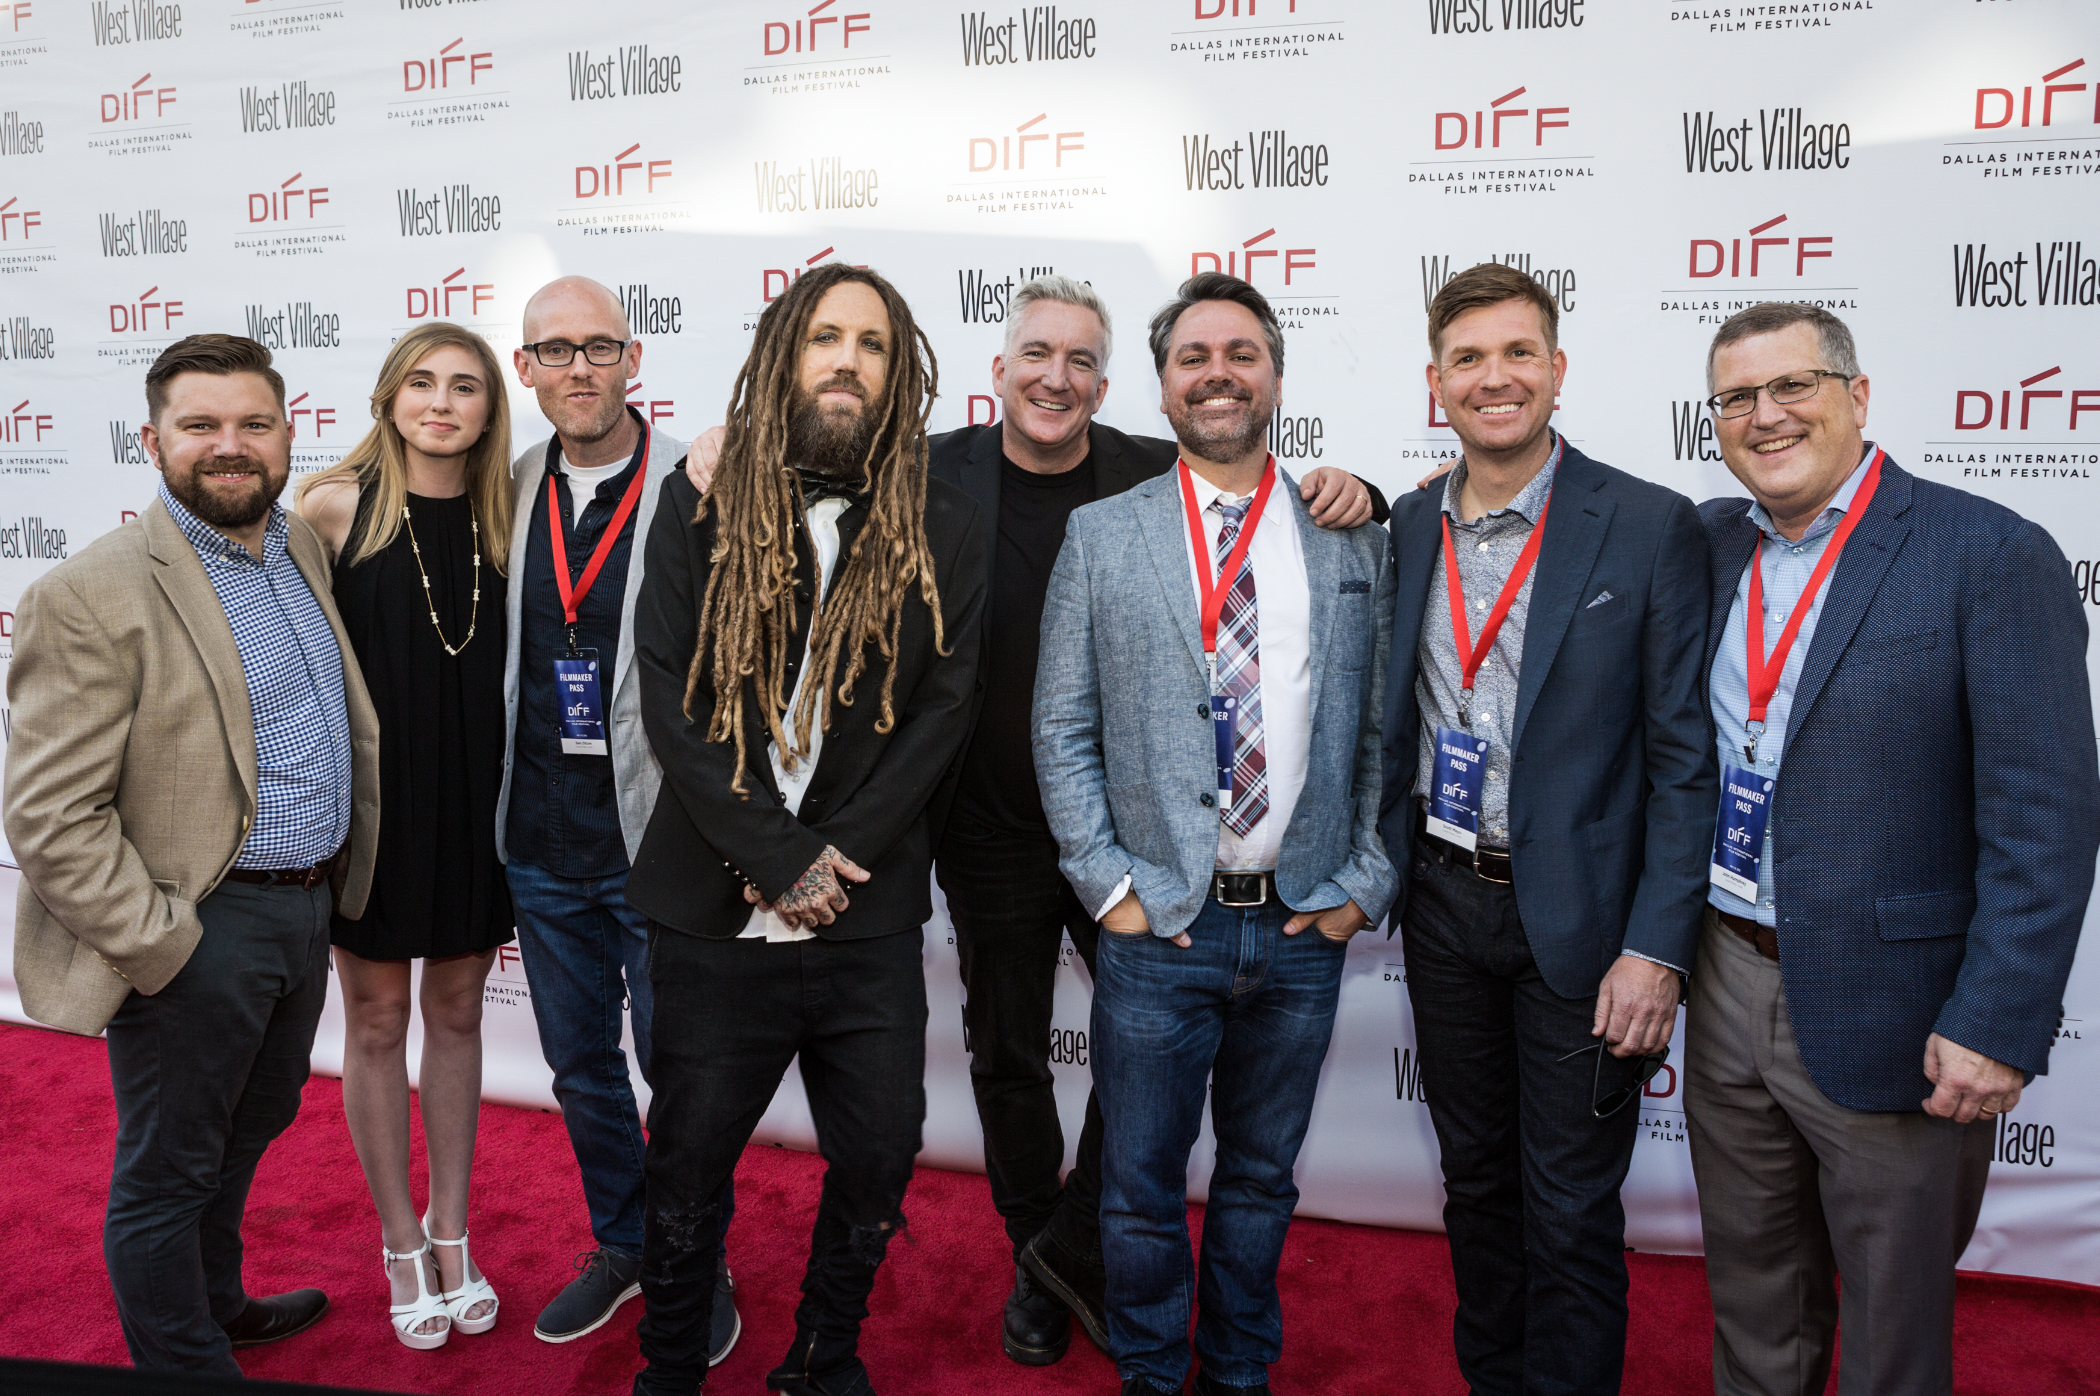 """Caption: (L to R) I Am Second President Lance Villio, Lane Ditore, Producer Sam Ditore, KoRn Founding Member Brian """"Head"""" Welch, Ditore Mayo Creative Director Kevin Shivers, Director Trey Hill, Director Scott Mayo and Producer John Humphrey walk the Red Carpet at the Dallas International Film Festival prior to the Texas Premiere of """"LOUD KRAZY LOVE."""""""